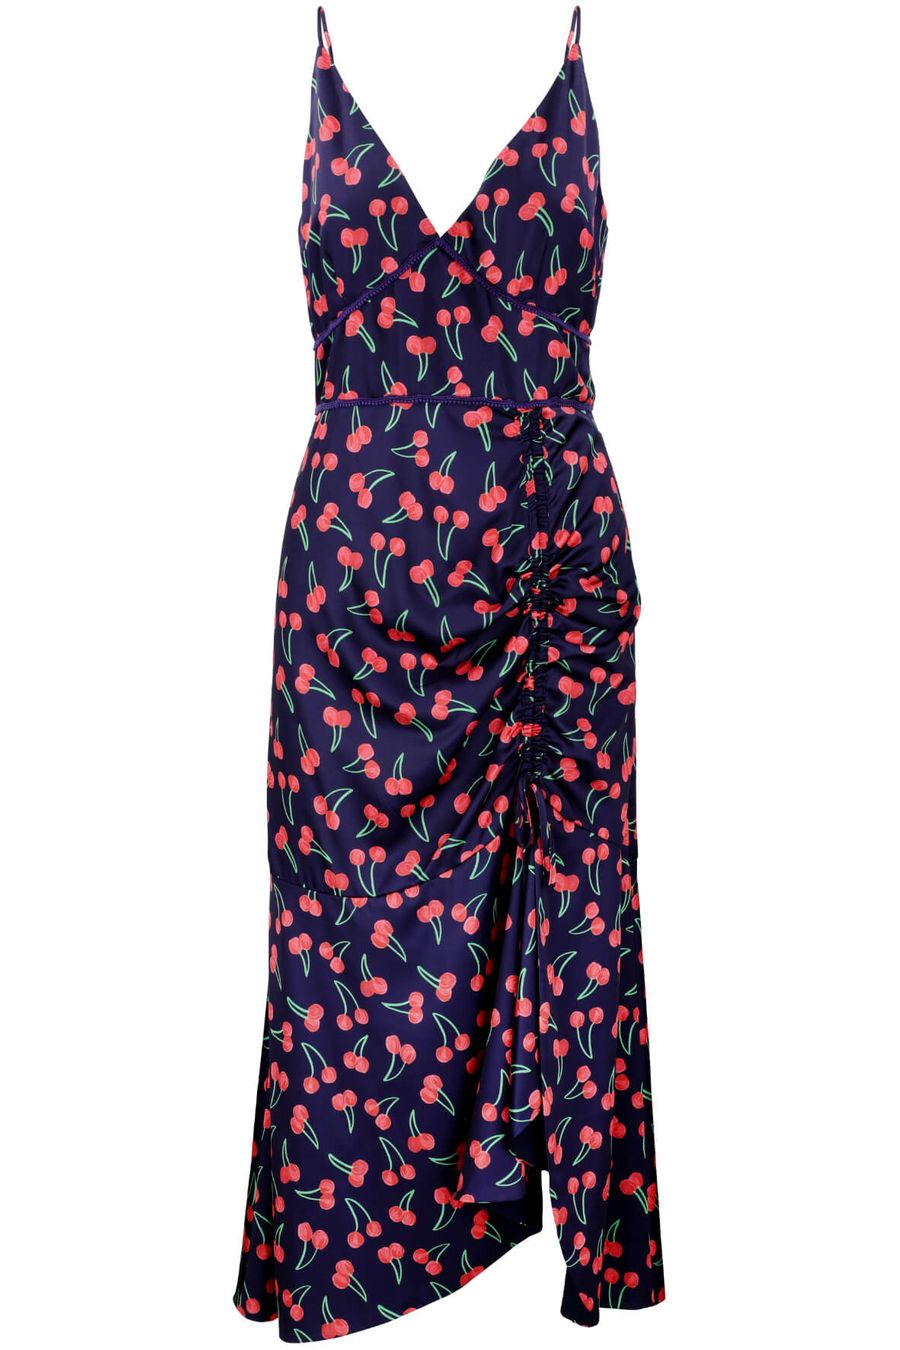 finders-keepers-valentina-dress-1